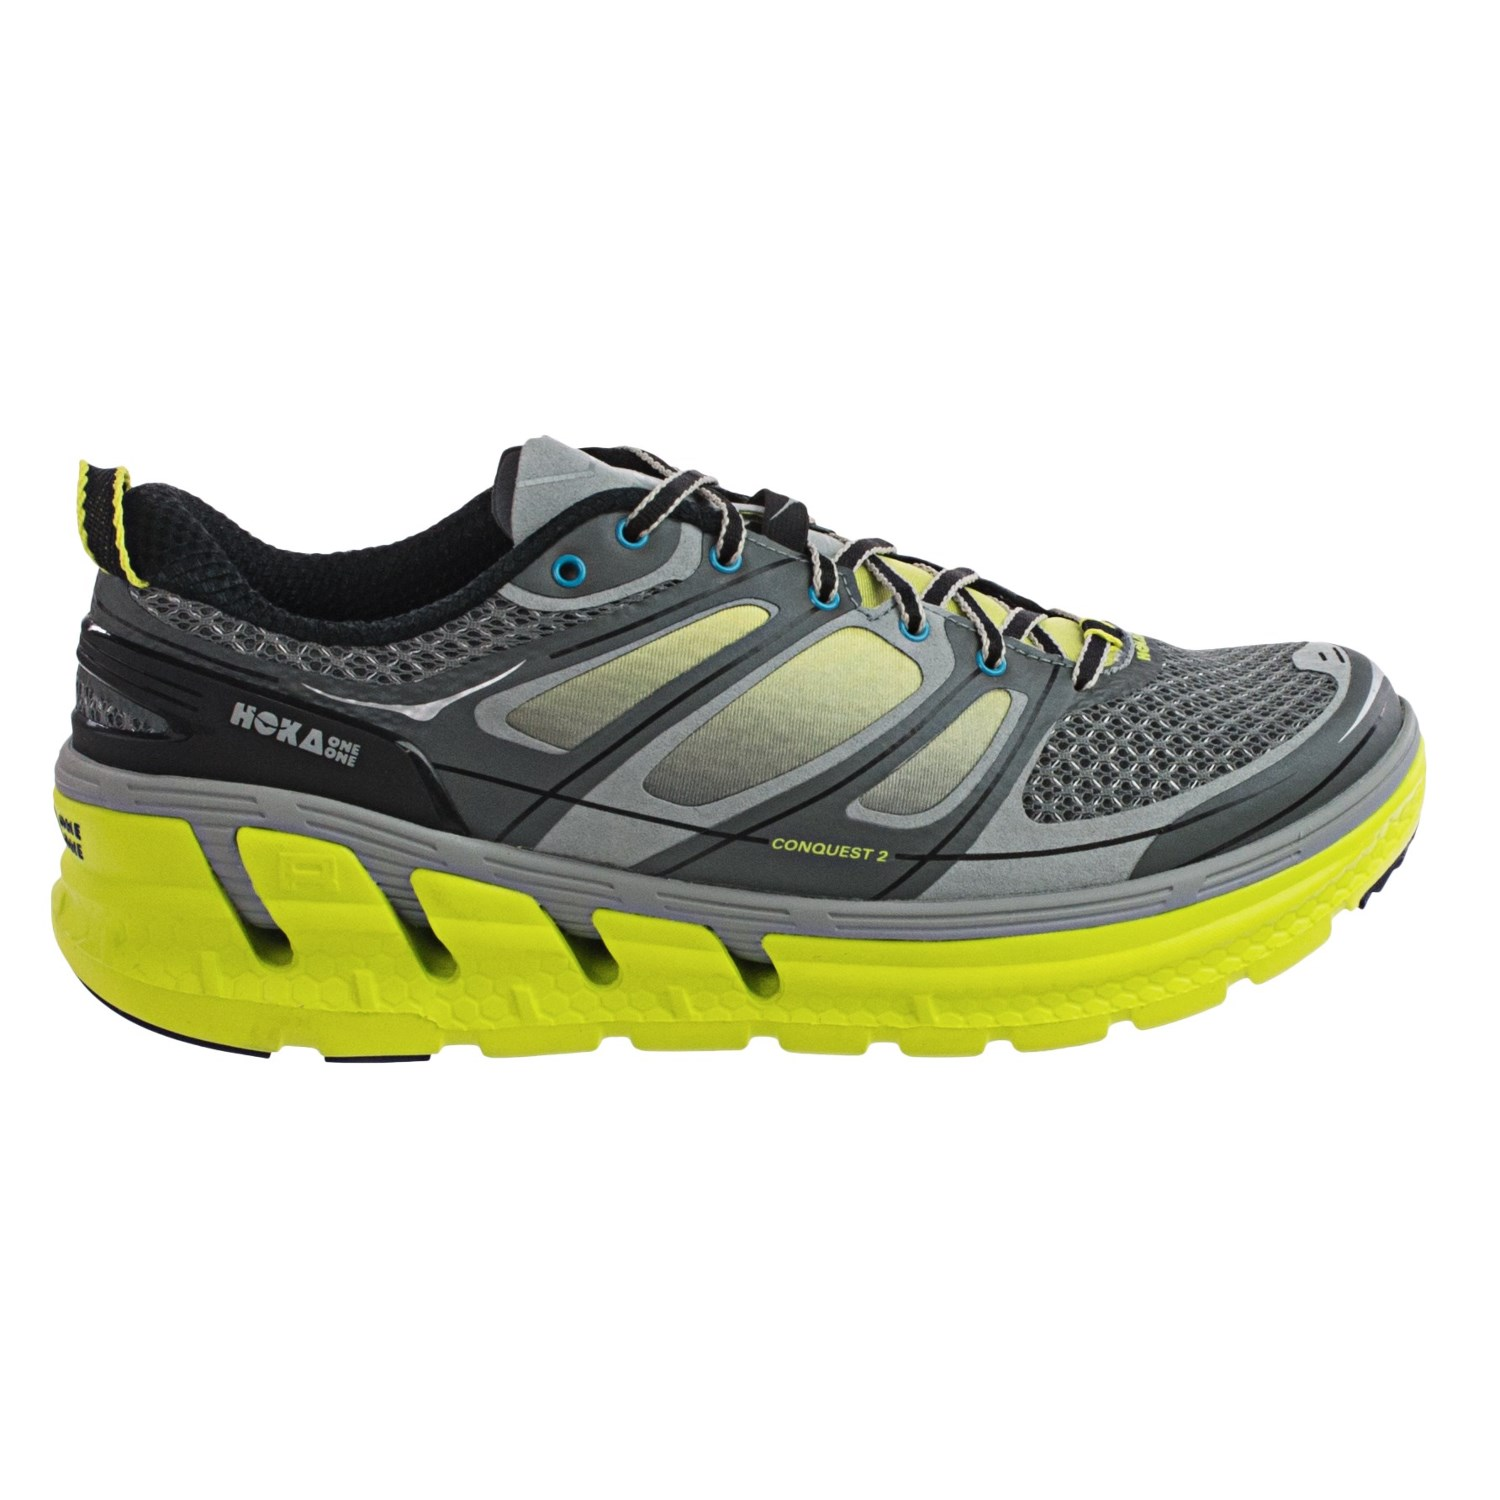 Running Times Shoe Review